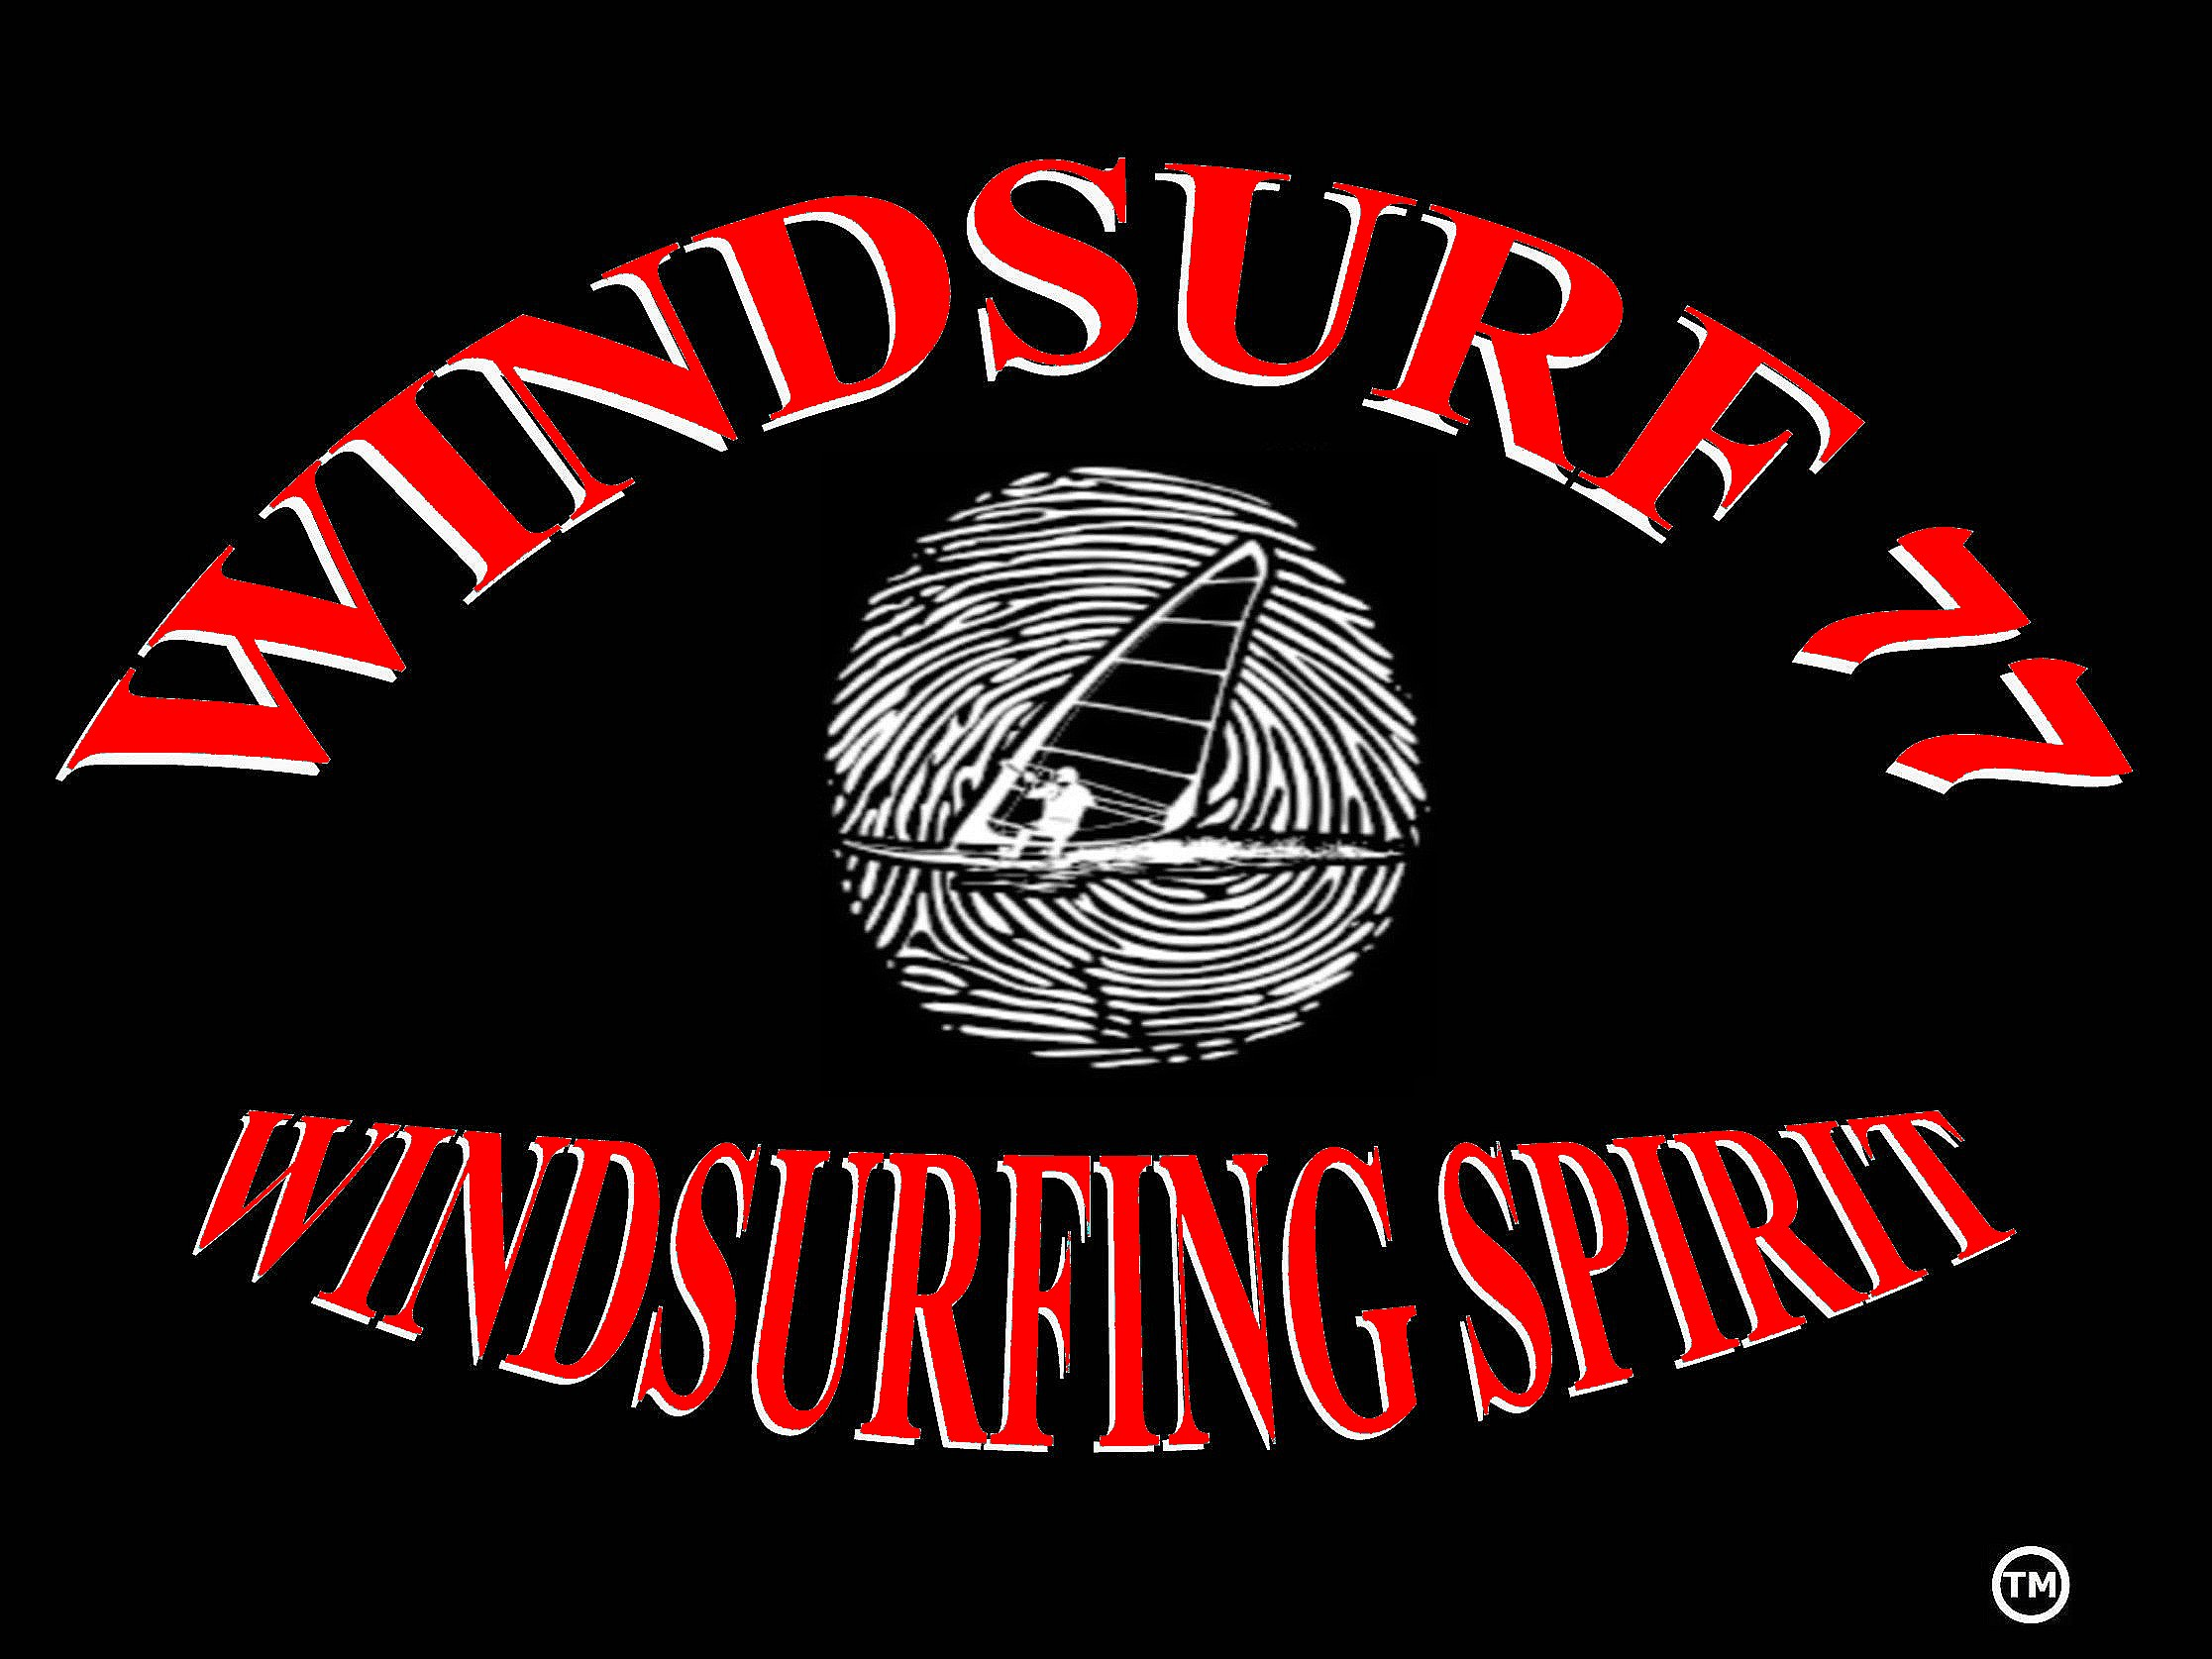 LOGO WINDSURF 77 ROUGE NEW 3.jpg